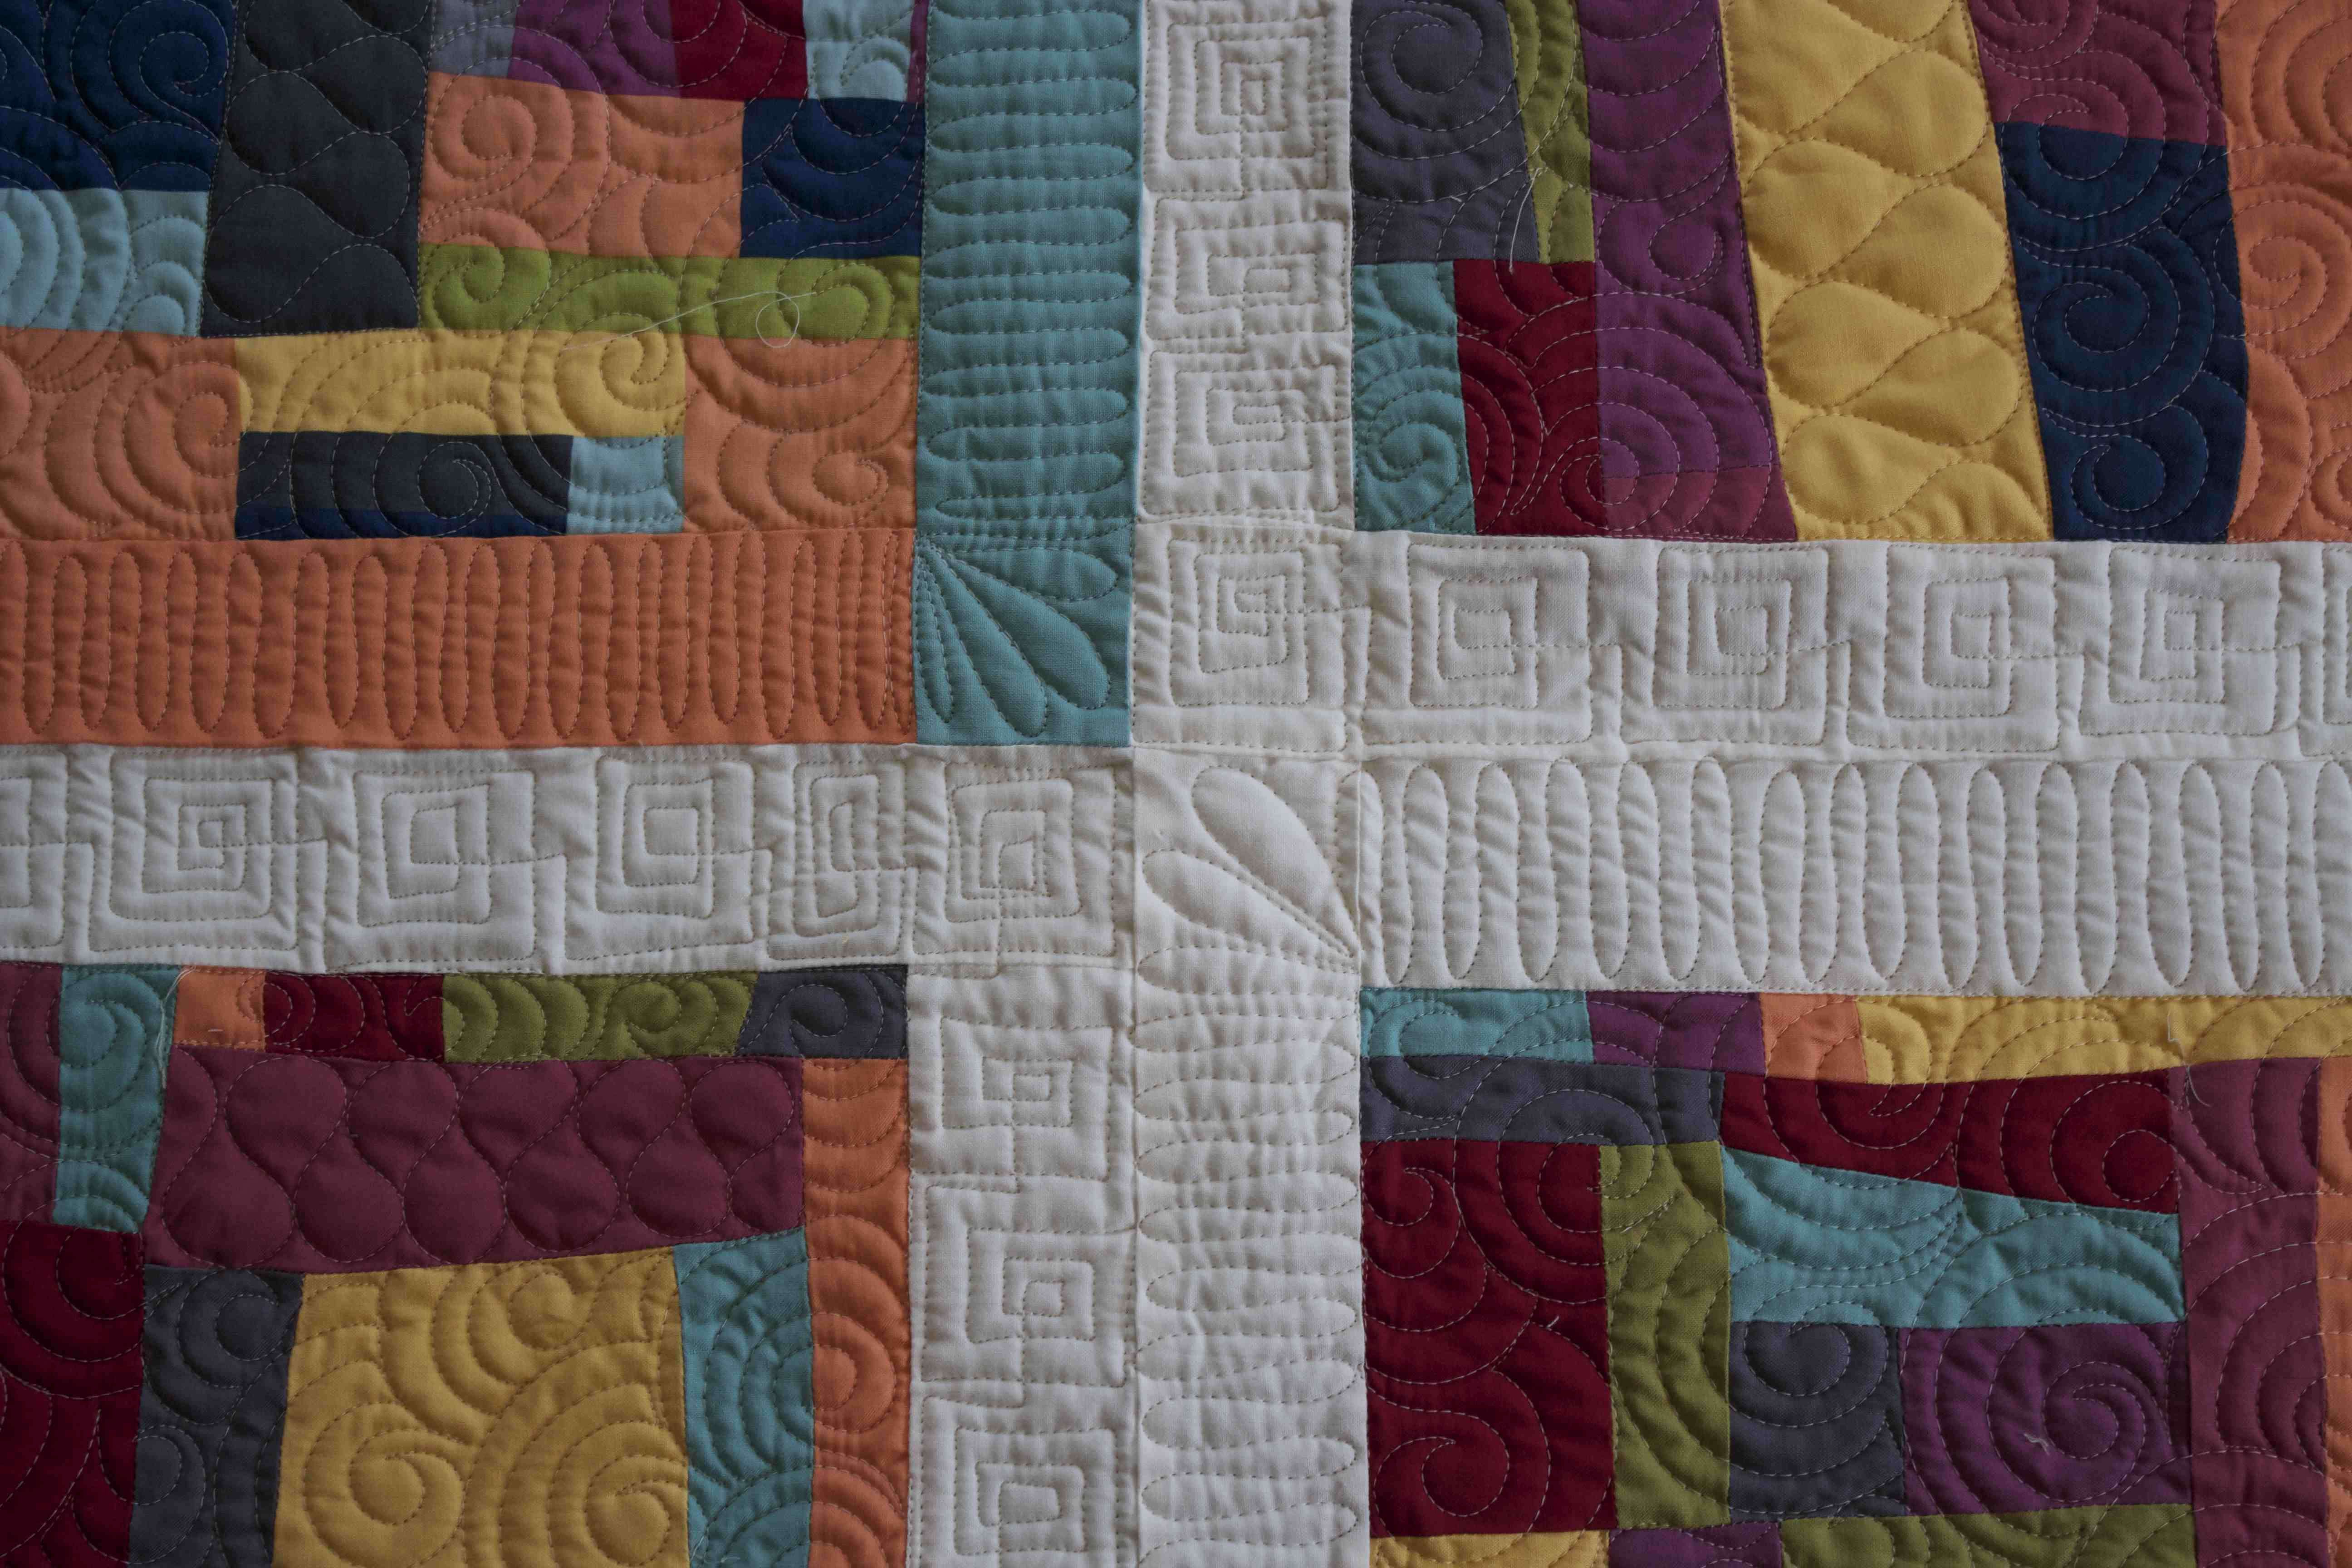 Quilting Is My Therapy Kona Modern Quilts - Quilting Is My Therapy : images of modern quilts - Adamdwight.com